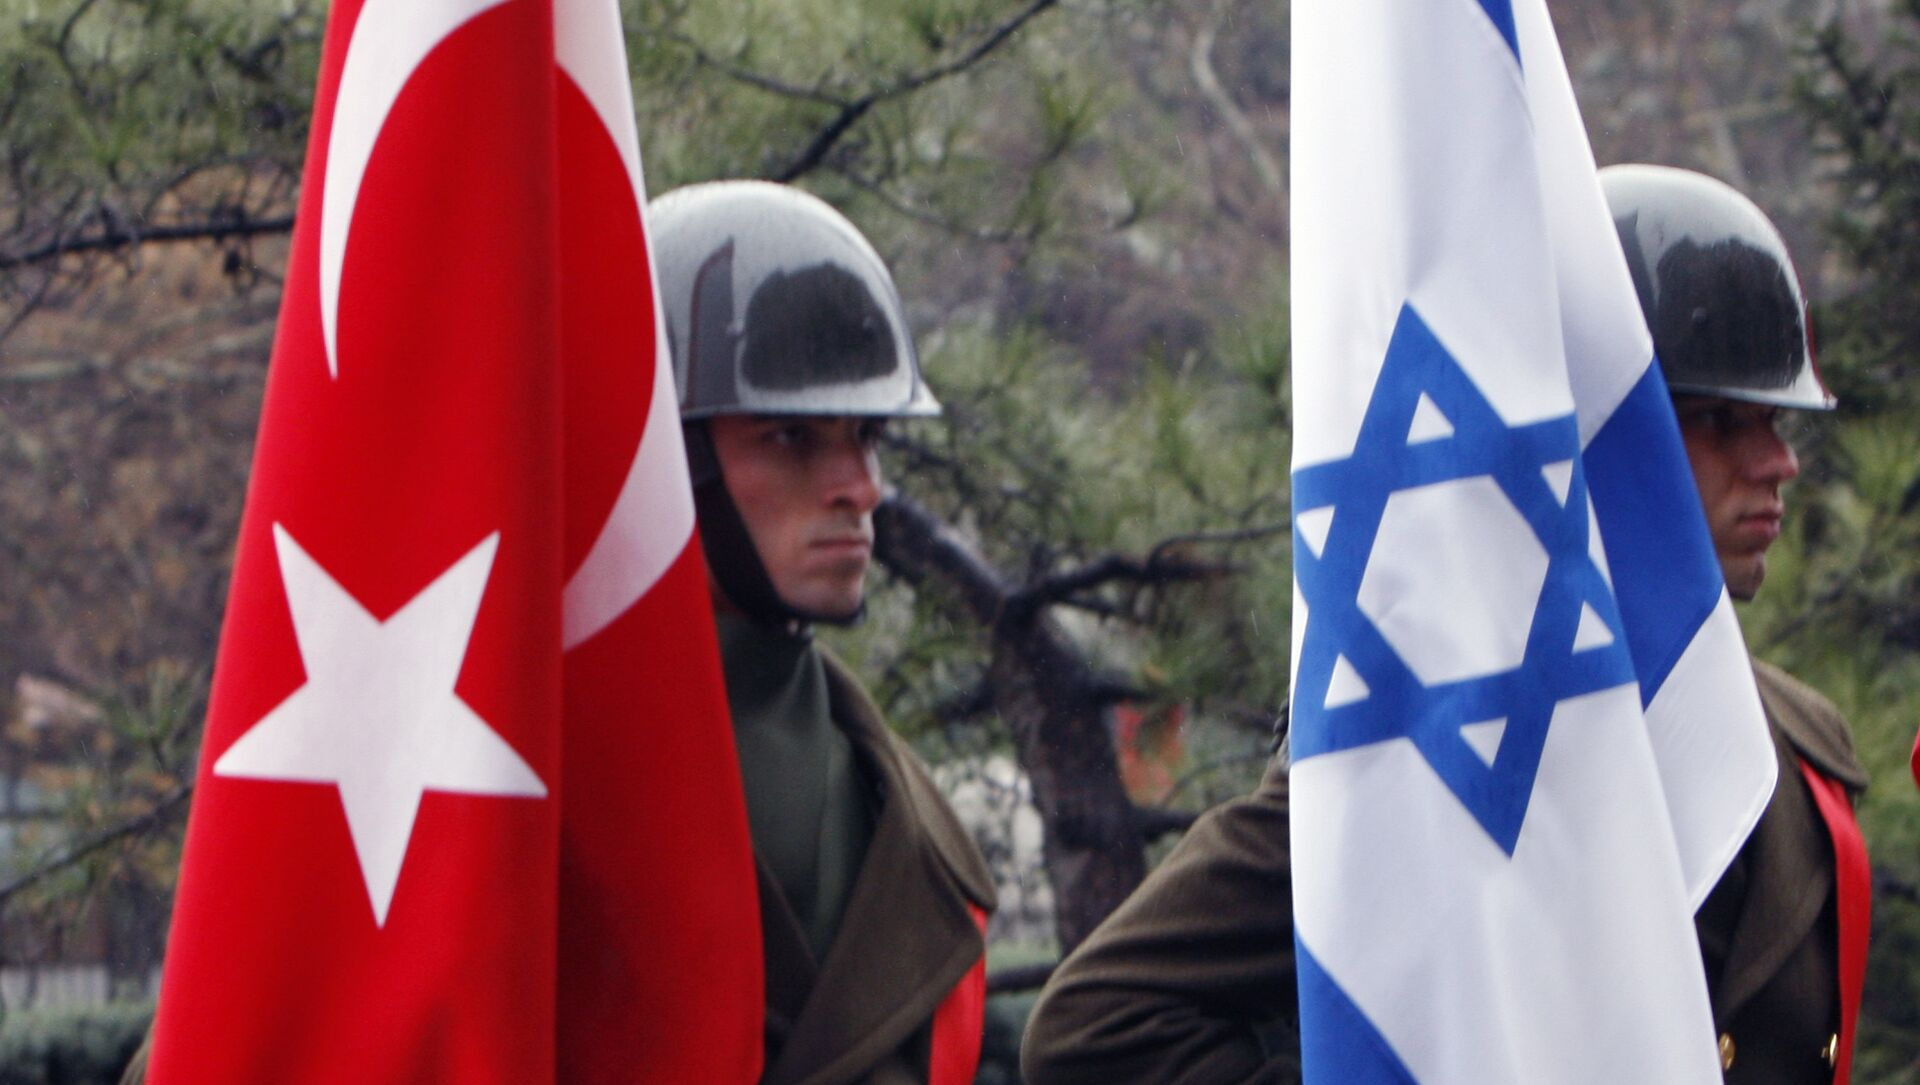 Turkish honour guard soldiers hold an Israeli, right, and Turkish flag, left, after Israeli Defense Minister Ehud Barak and his Turkish counterpart Vecdi Gonul reviewed the military guard of honour before their talks in Ankara, Turkey, Sunday, Jan. 17, 2010 - Sputnik International, 1920, 25.07.2021